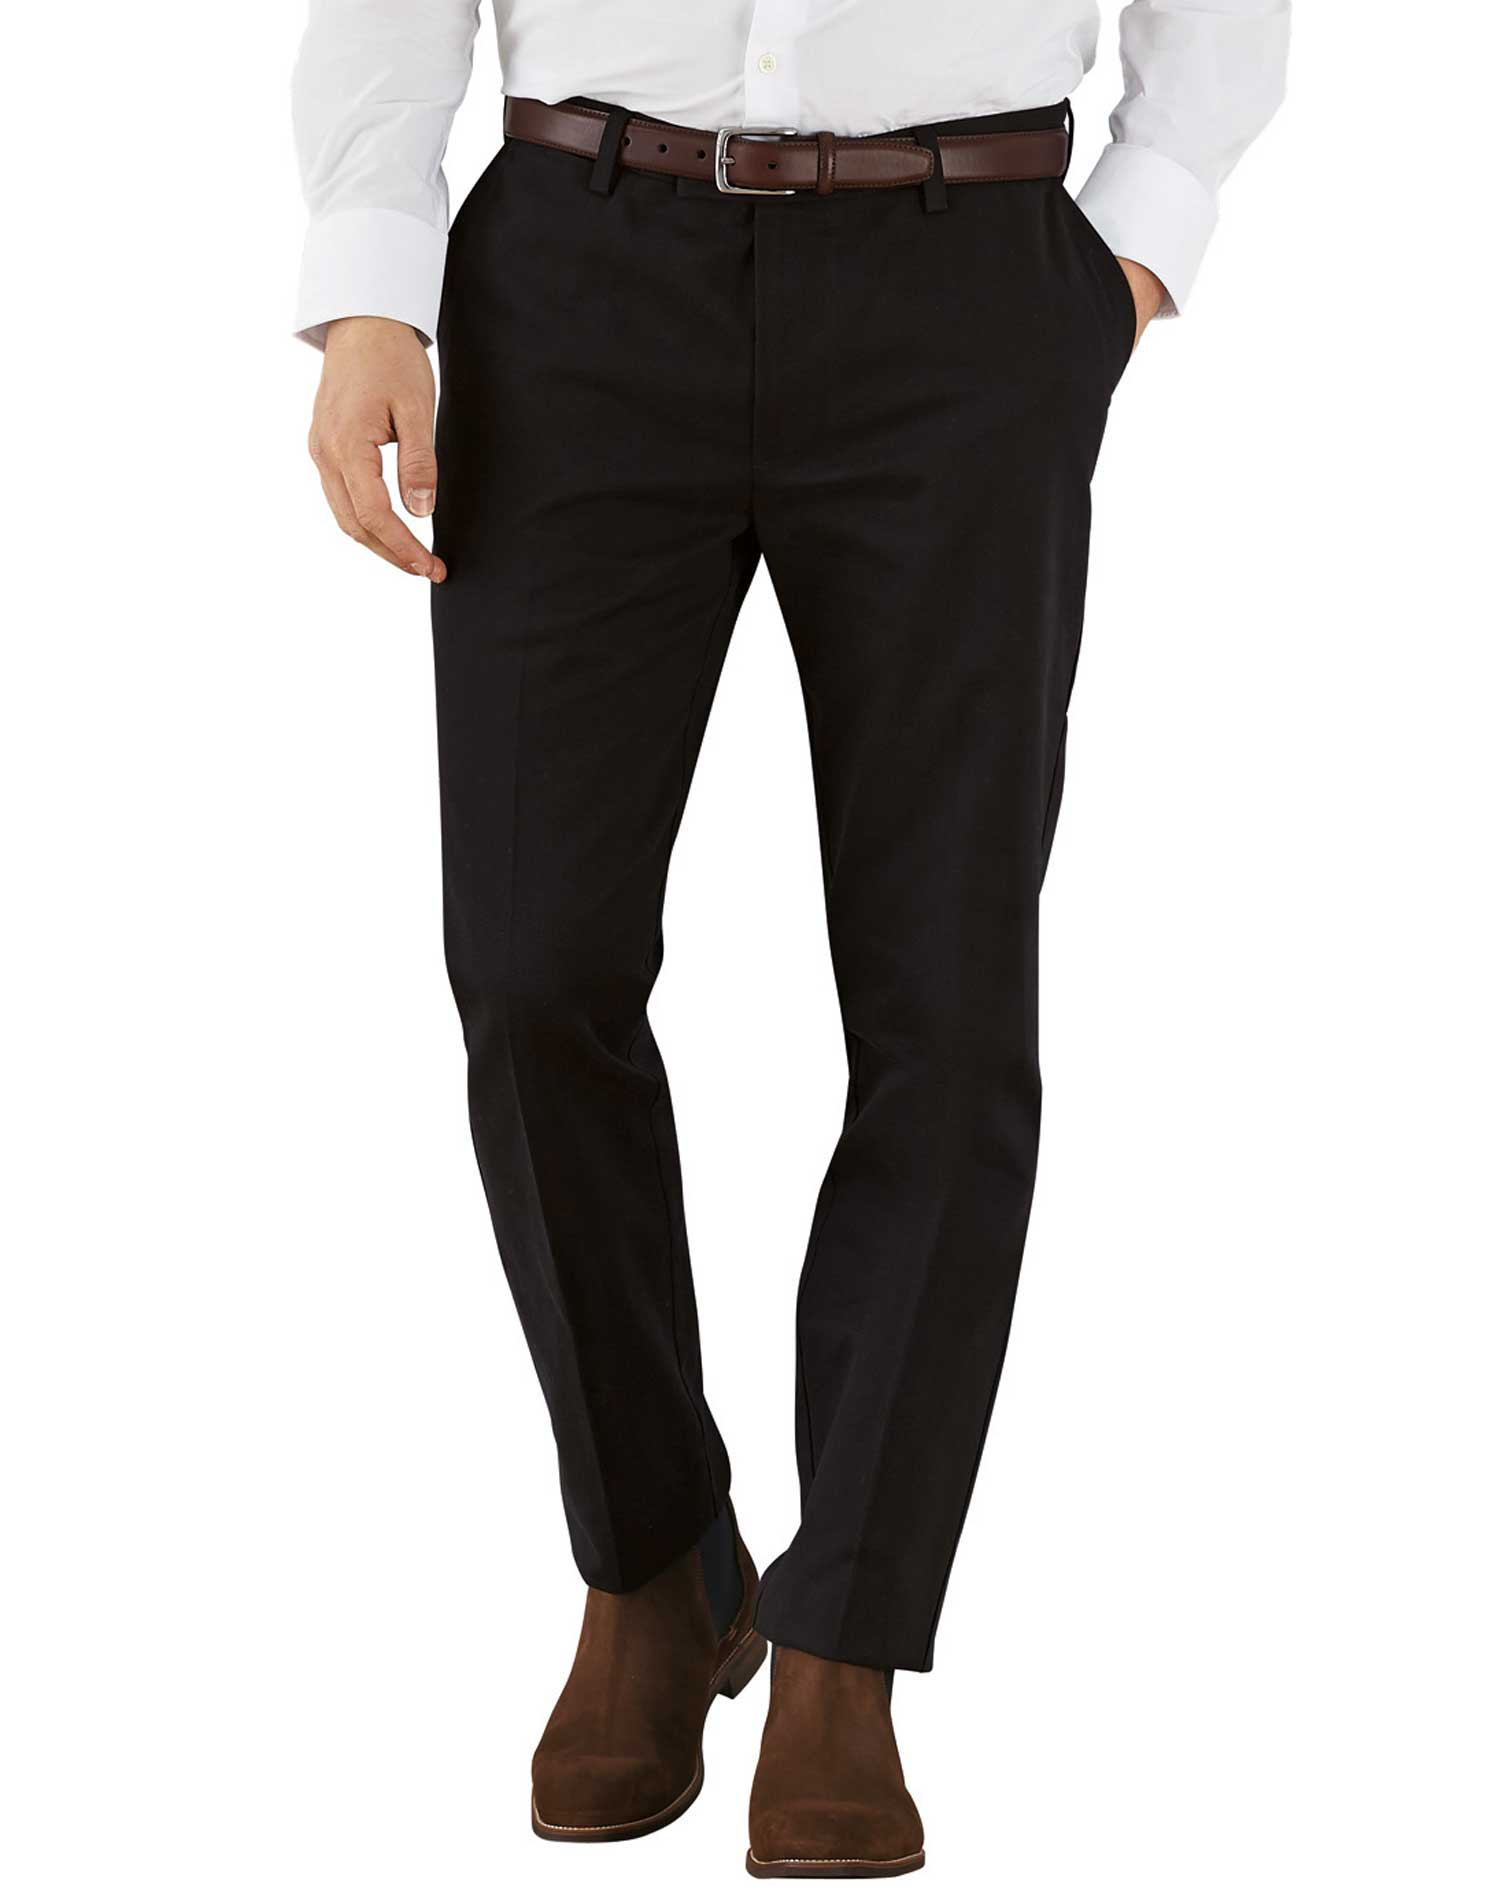 Black Extra Slim Fit Flat Front Non-Iron Cotton Chino Trousers Size W36 L38 by Charles Tyrwhitt